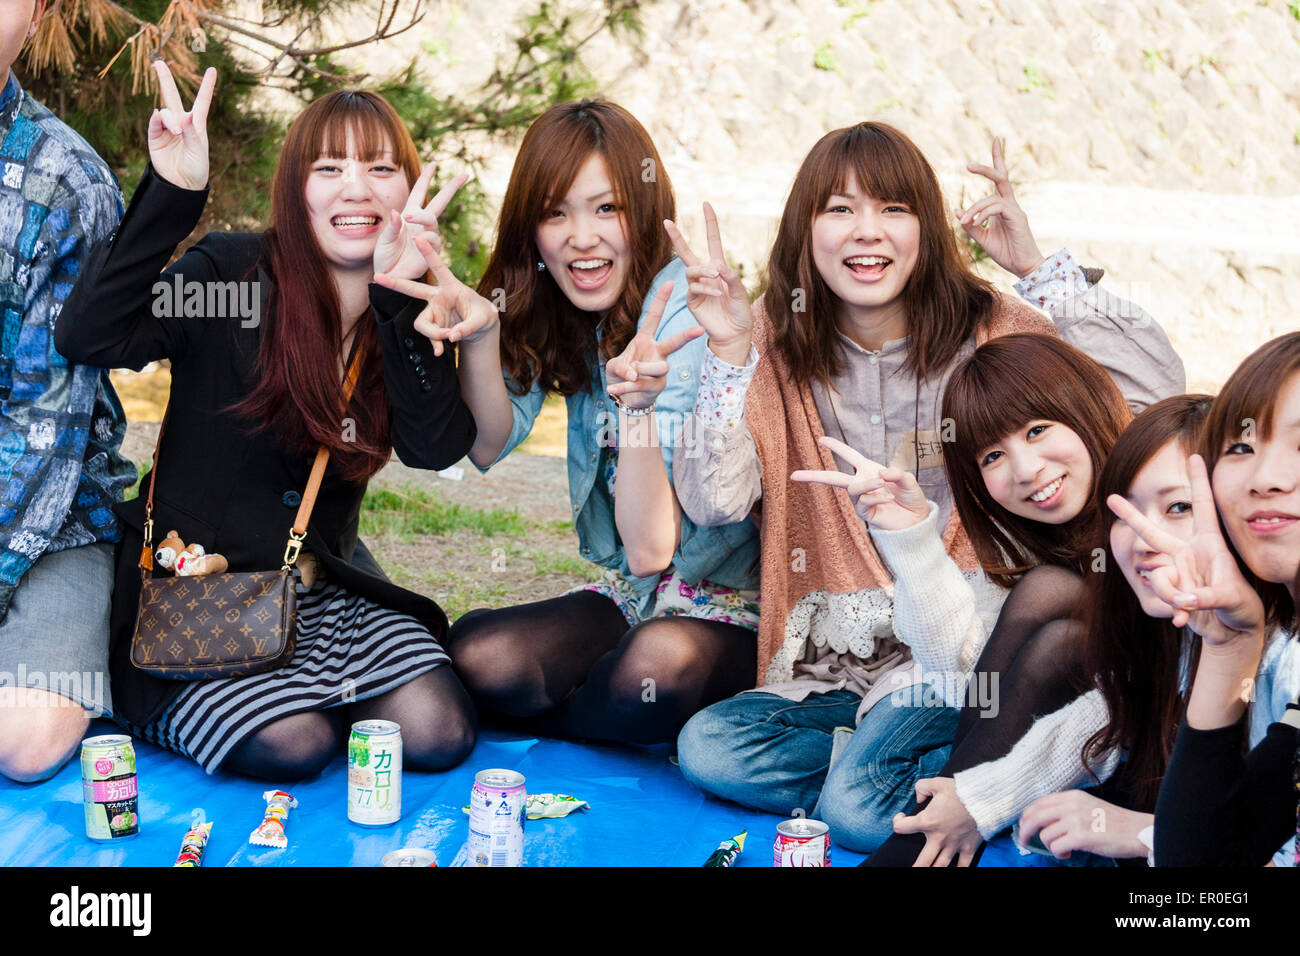 Japan, Shukugawa, cherry blossom party. Group of teenage girls sitting and posing for viewer, big smiles, peace - Stock Image